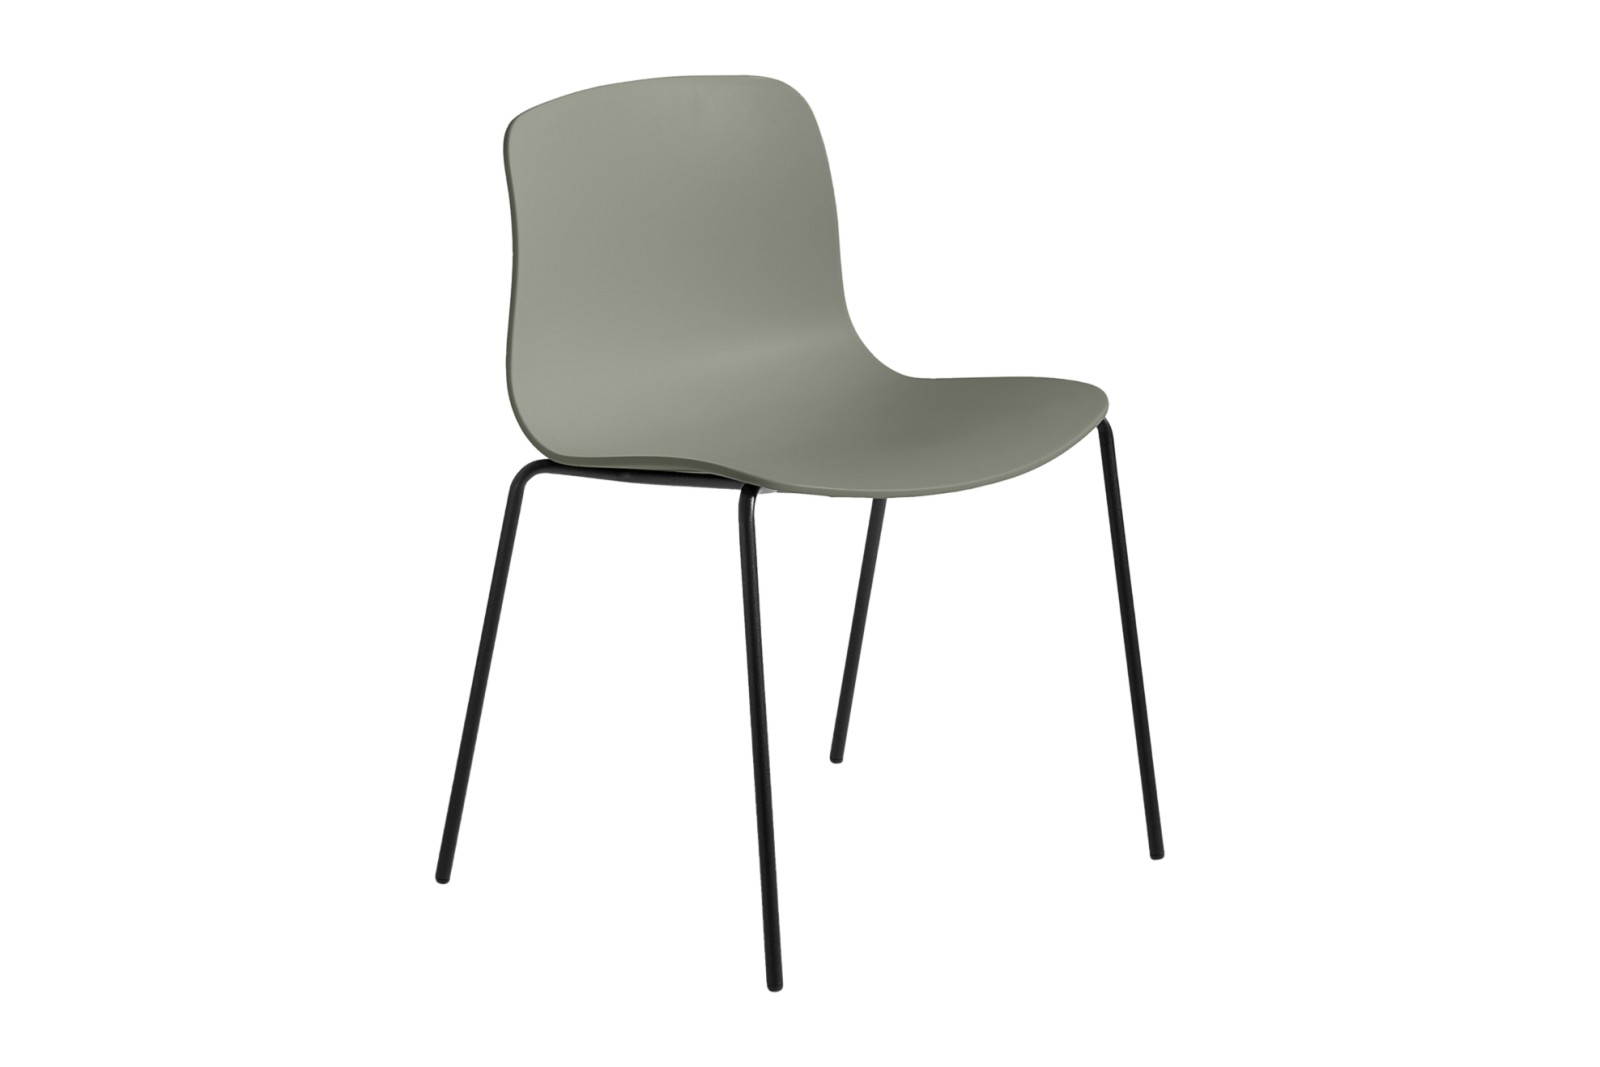 About A Chair AAC16 Dusty green, Black Powder Coated Steel